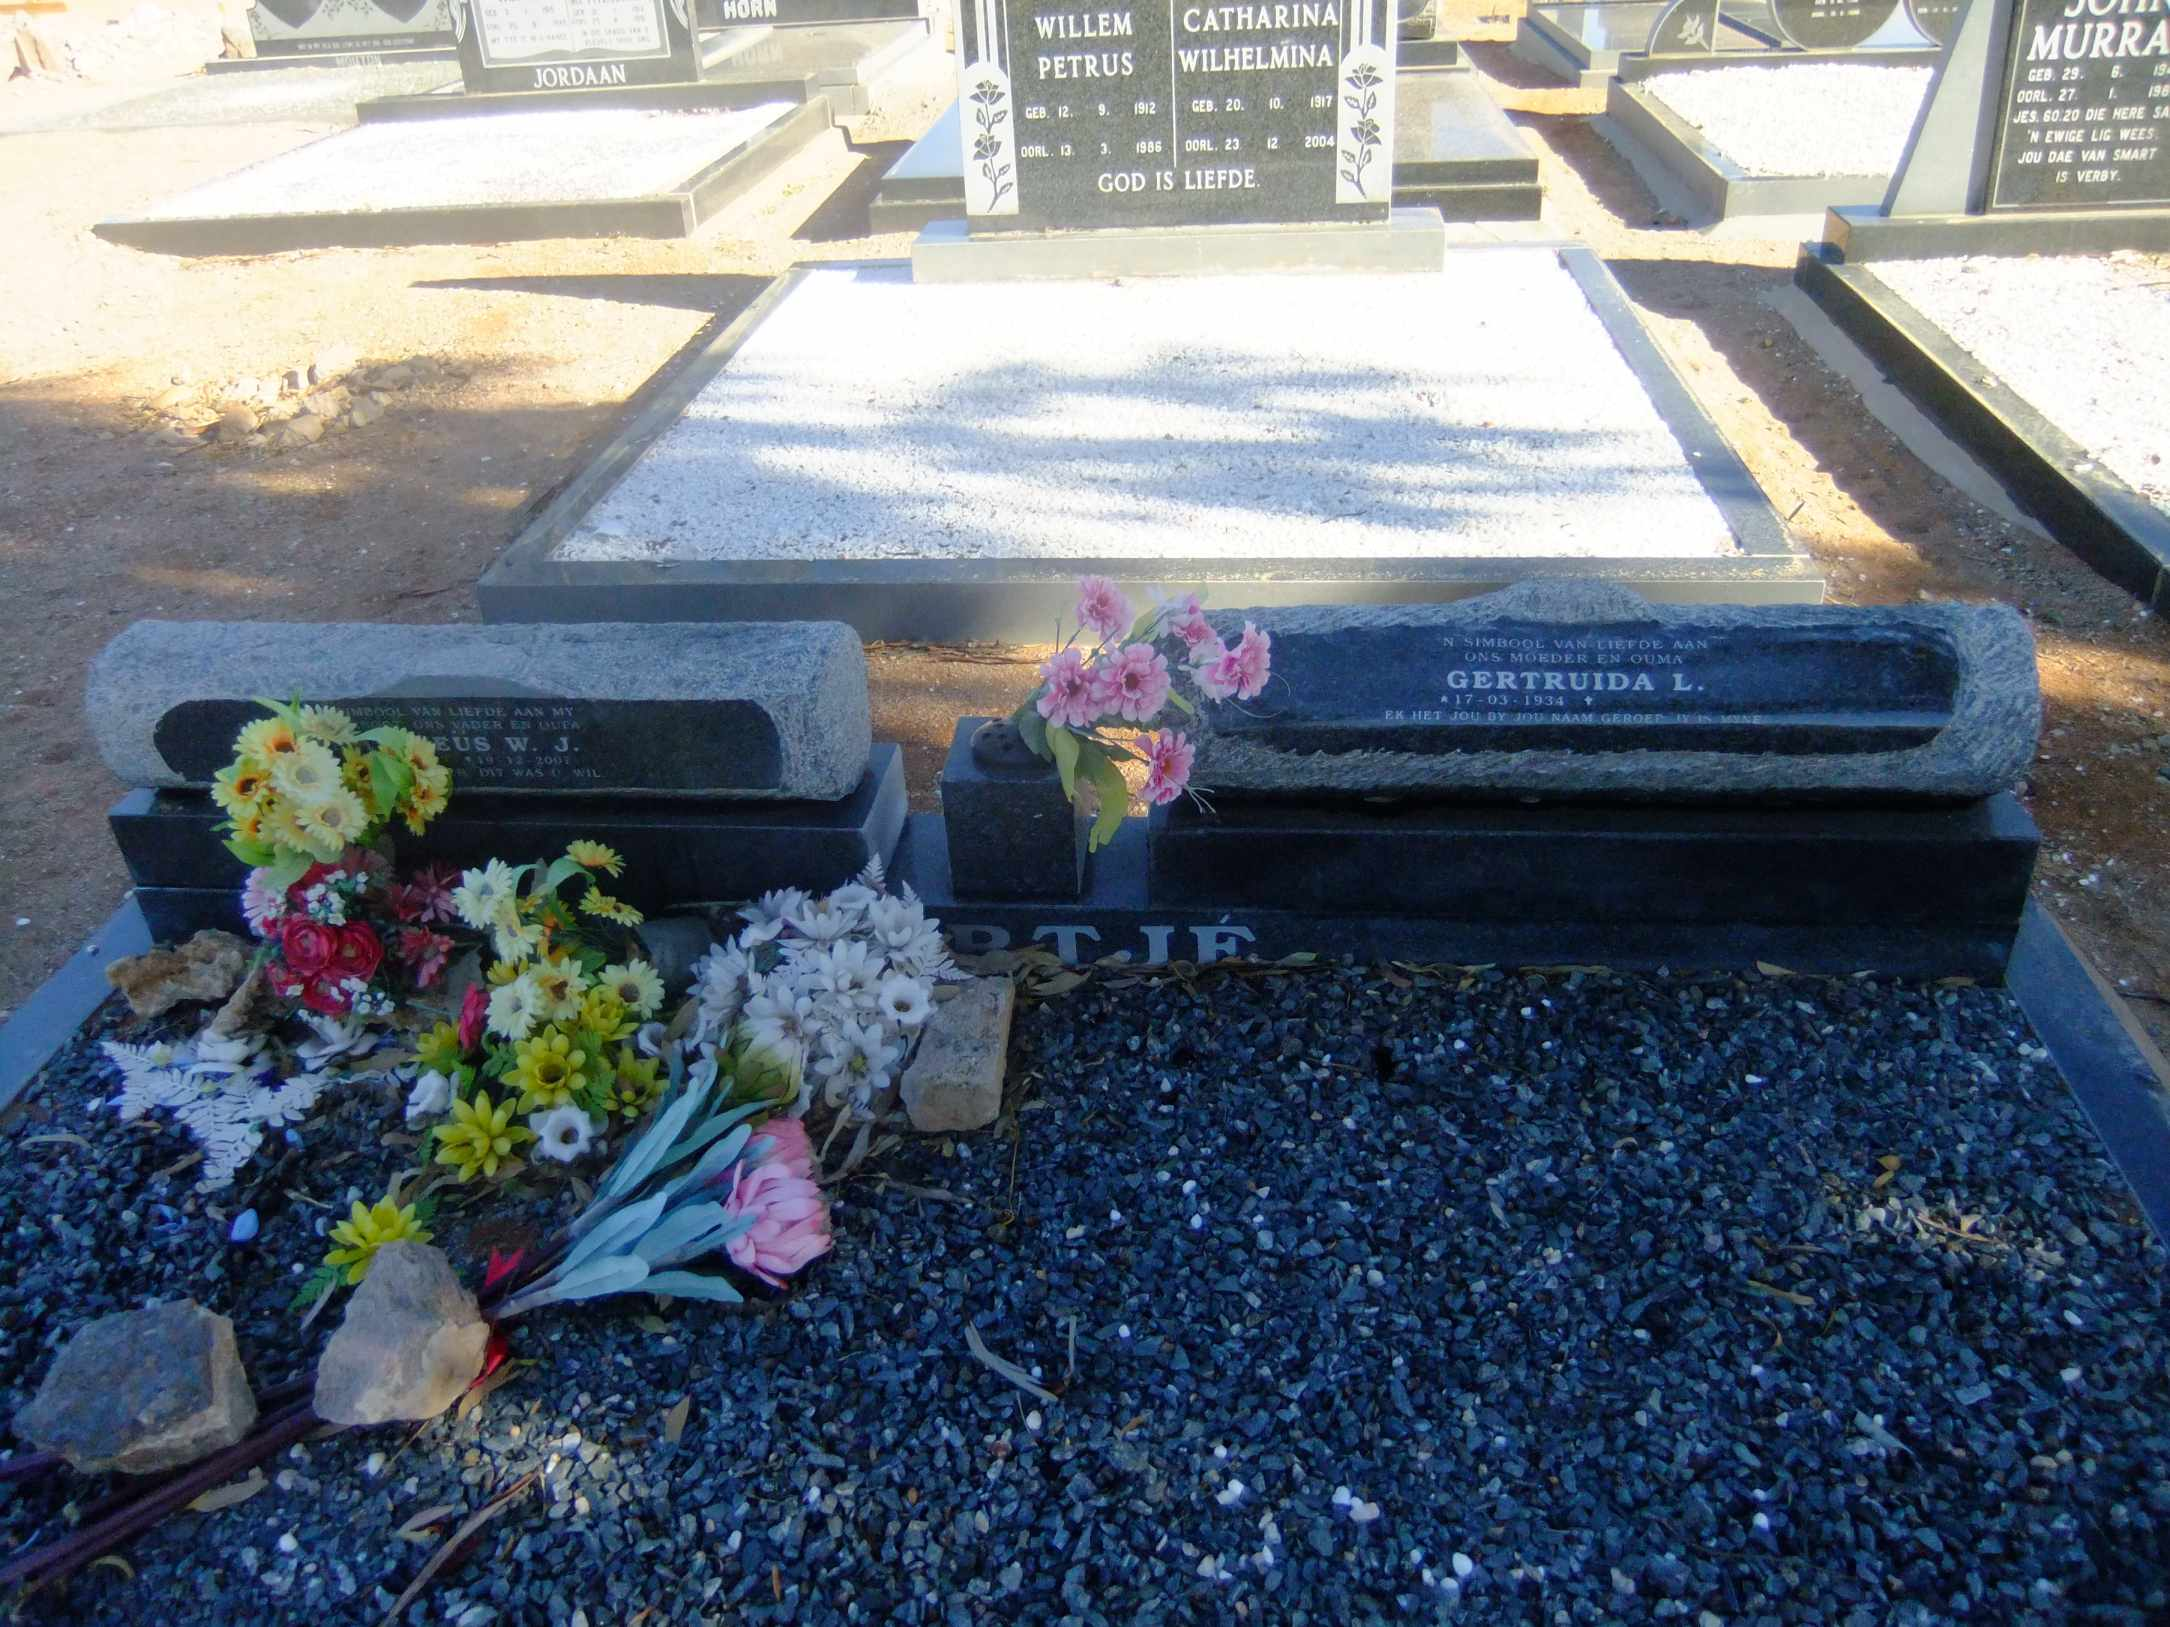 Nortjie, Matheus died December 2007 and Gertruida born 17 March 1934